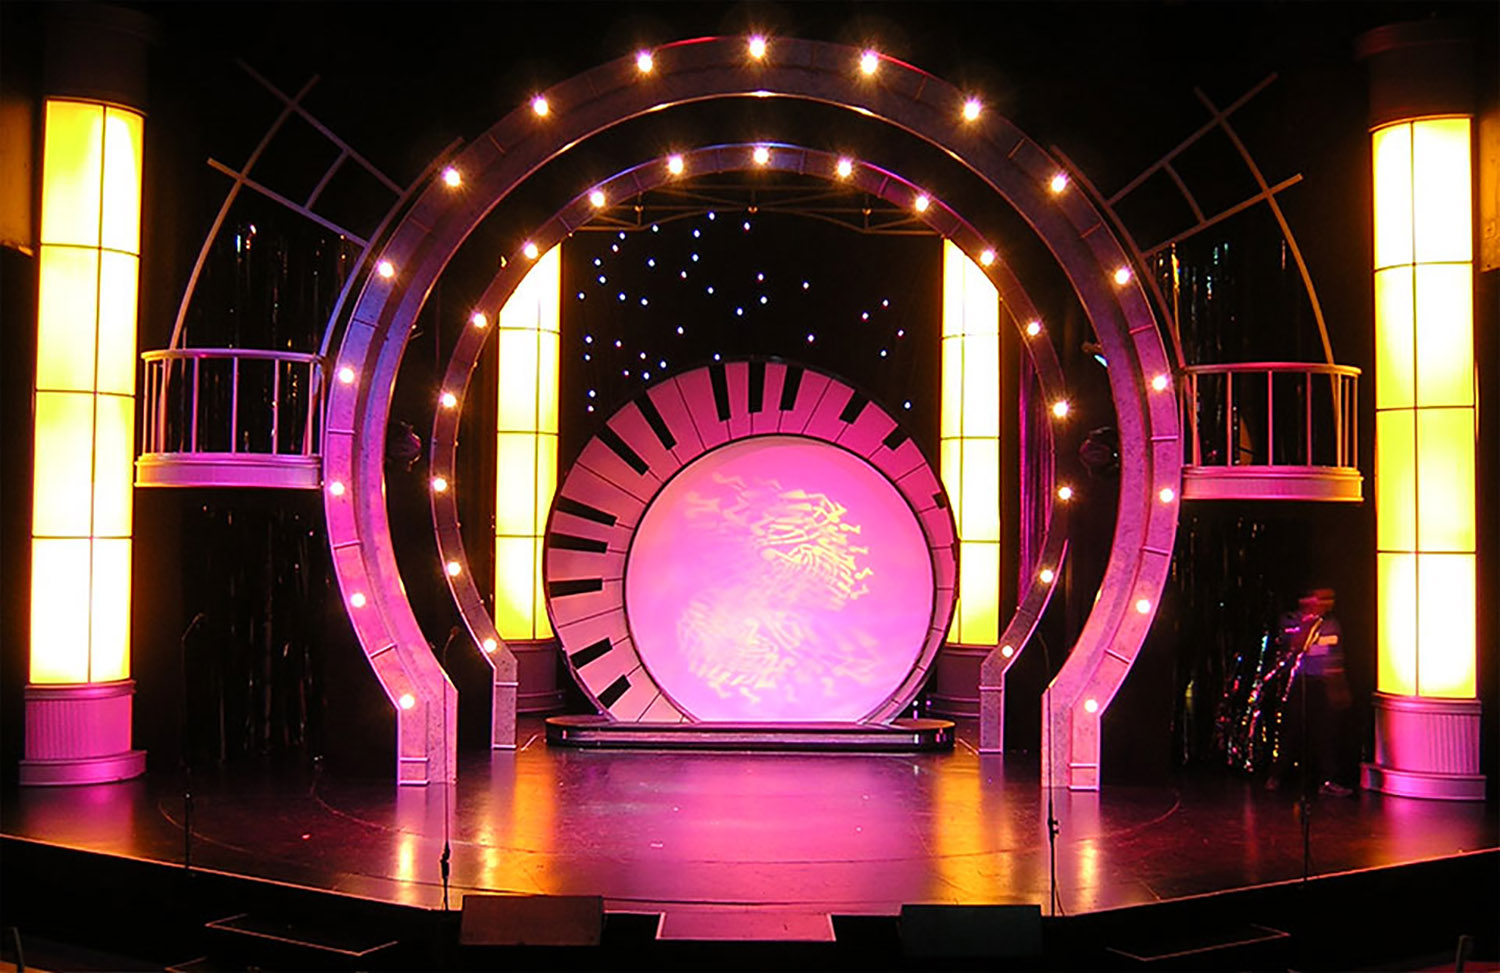 Rhythm_and_Grooves_Scenic_Design.jpg